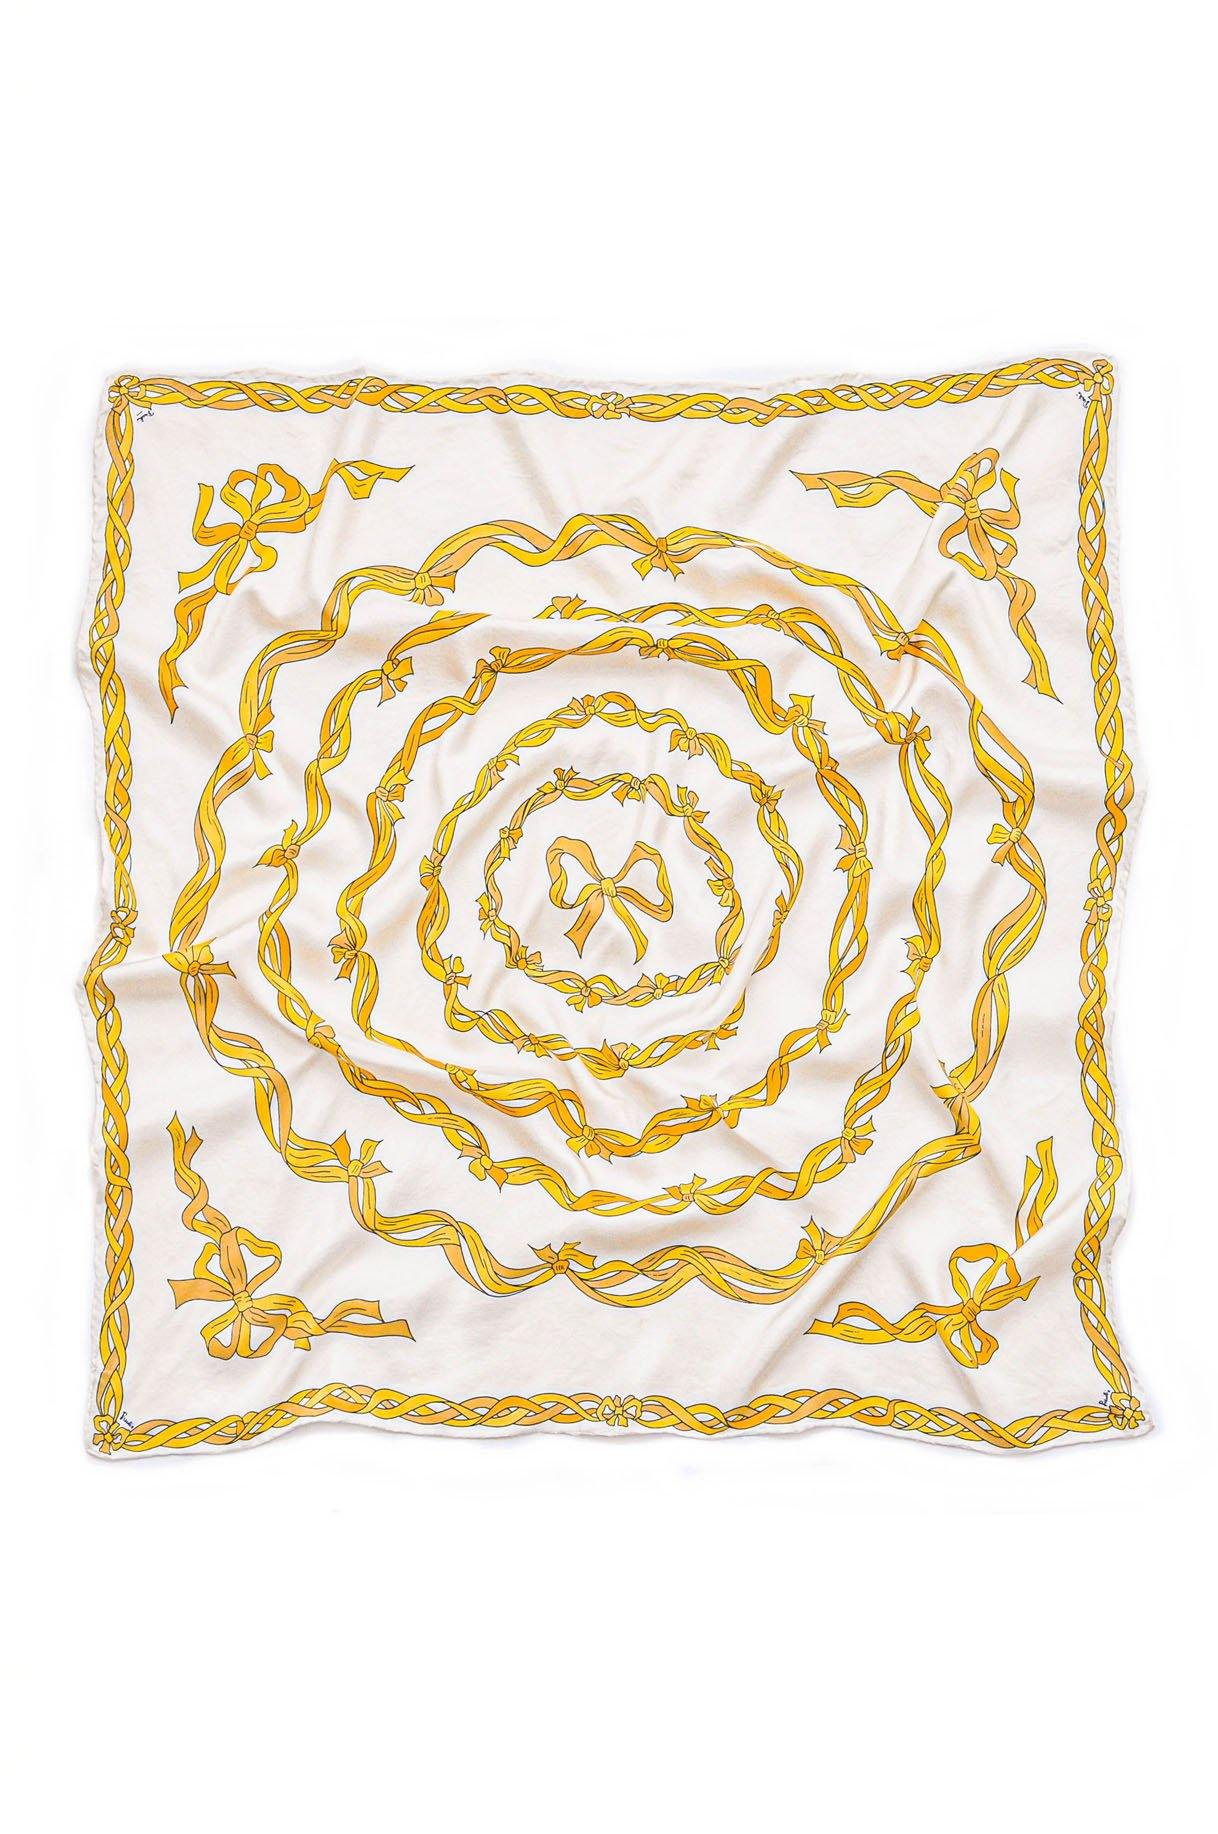 Vintage Pucci Gold Bows Scarf from Sweet and Spark